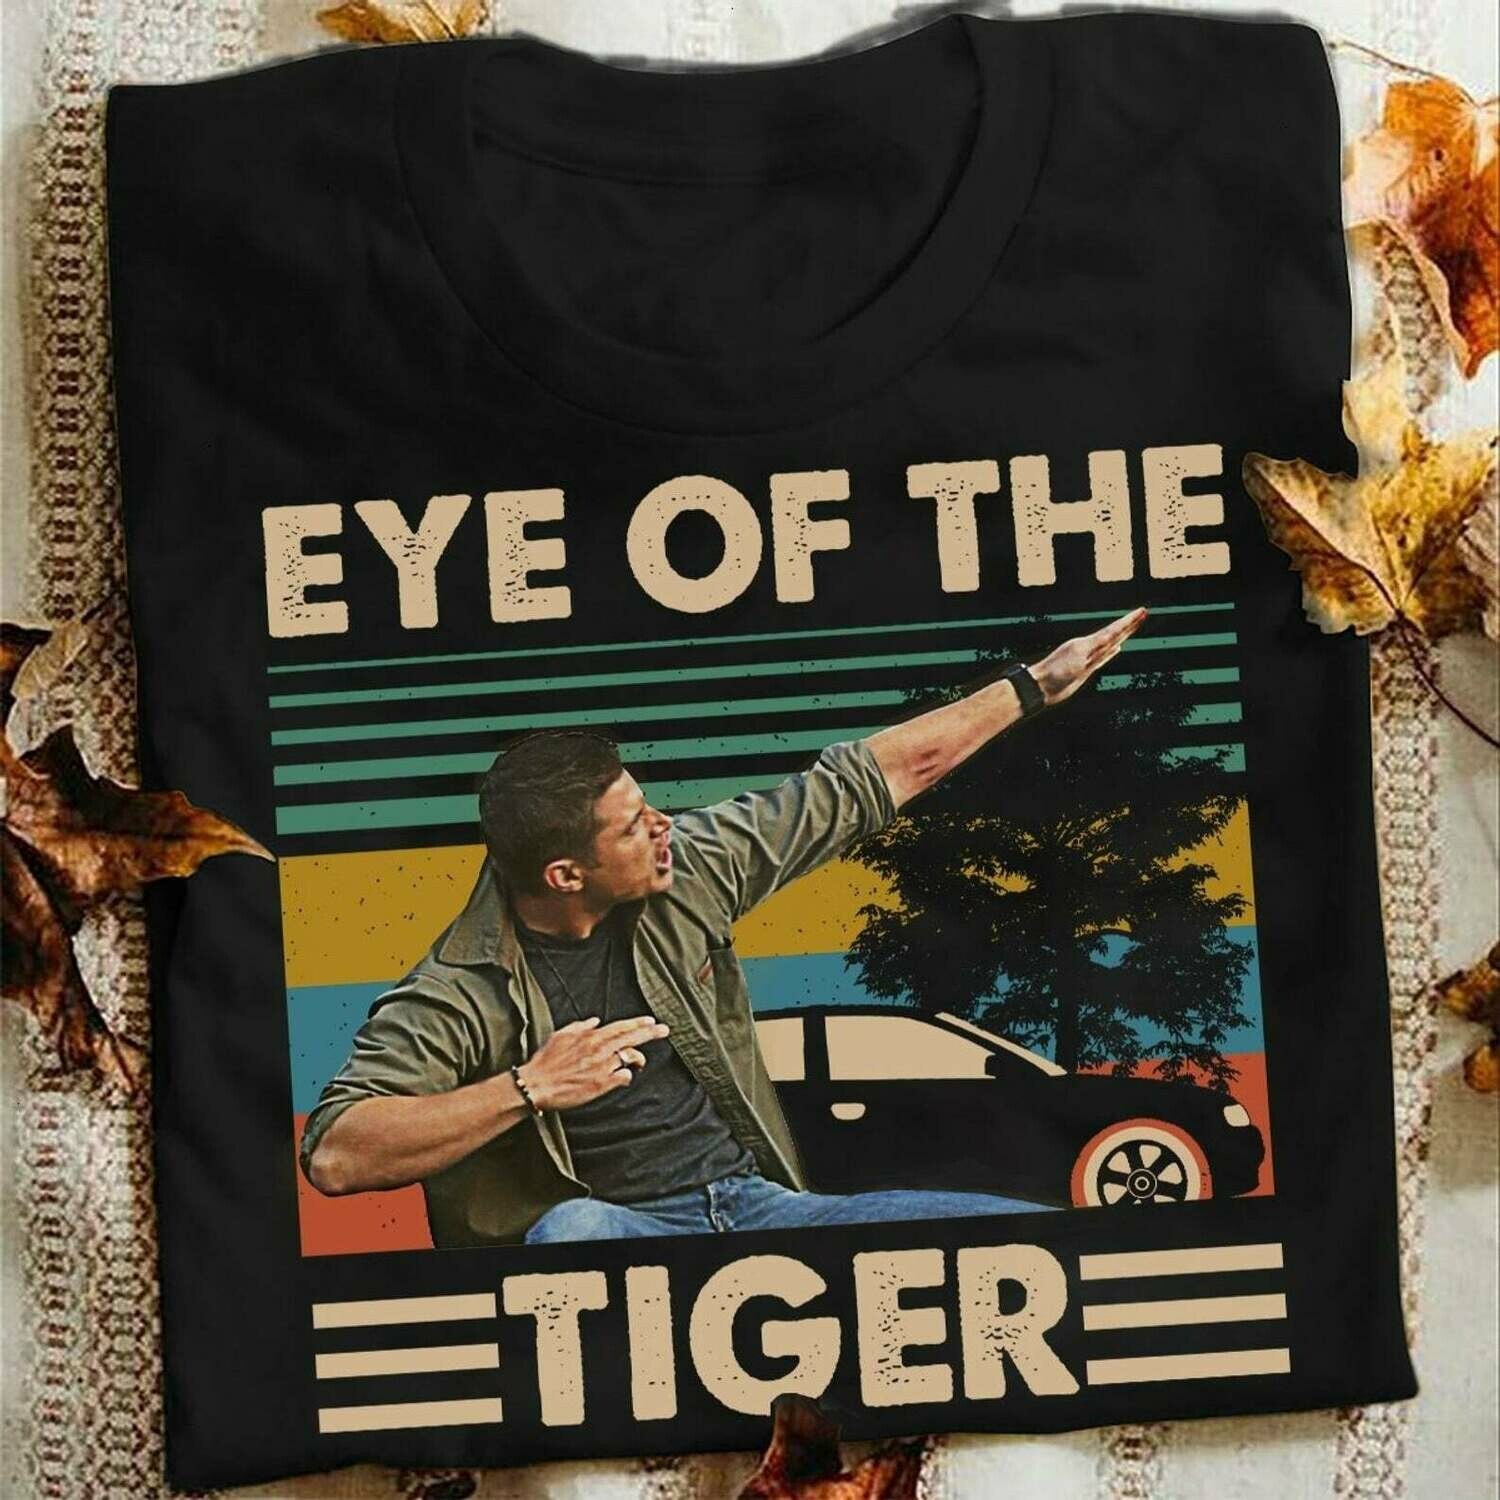 Eye of the tiger Supernatural Winchester Brothers Saving People Hunting Things The Family Business US TV Series Fans T Shirt